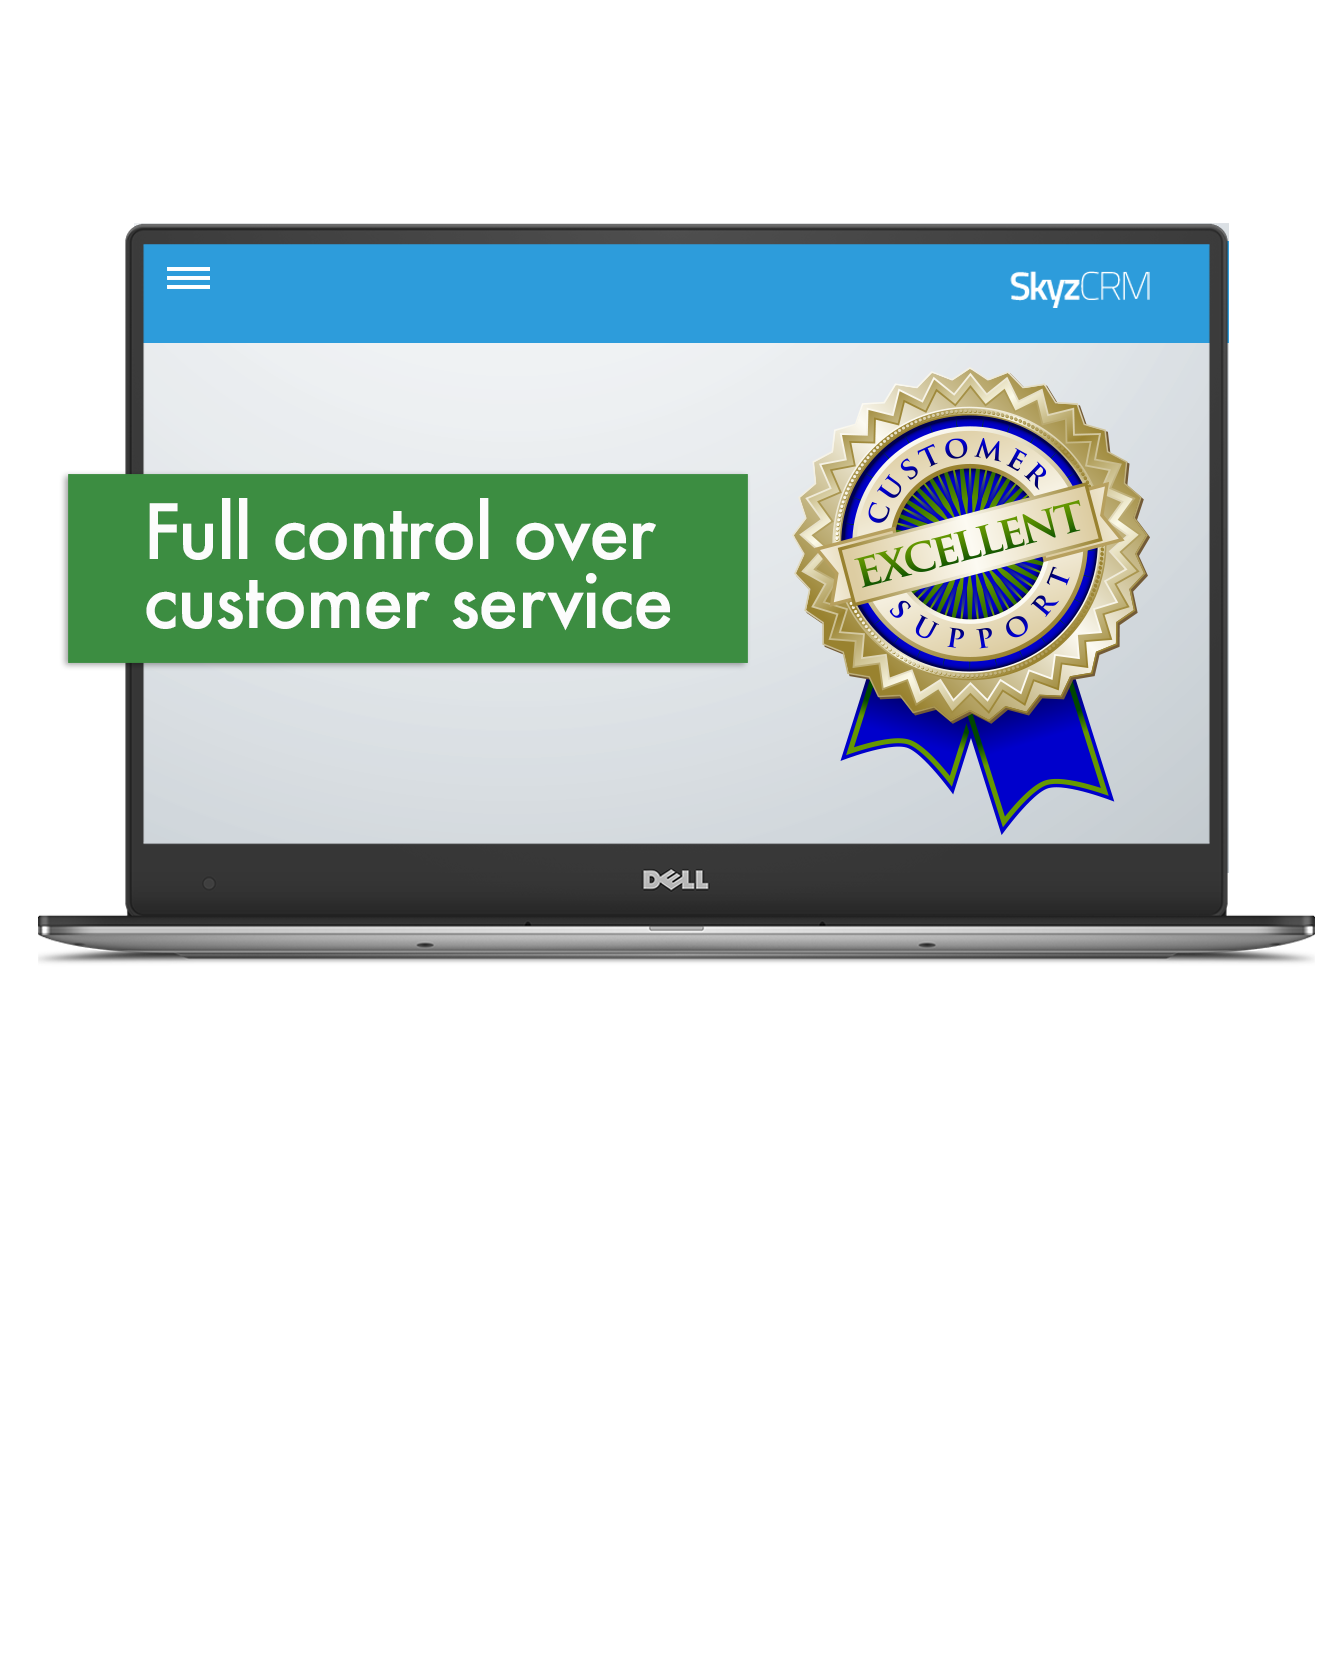 Customer service control with Skyz CRM